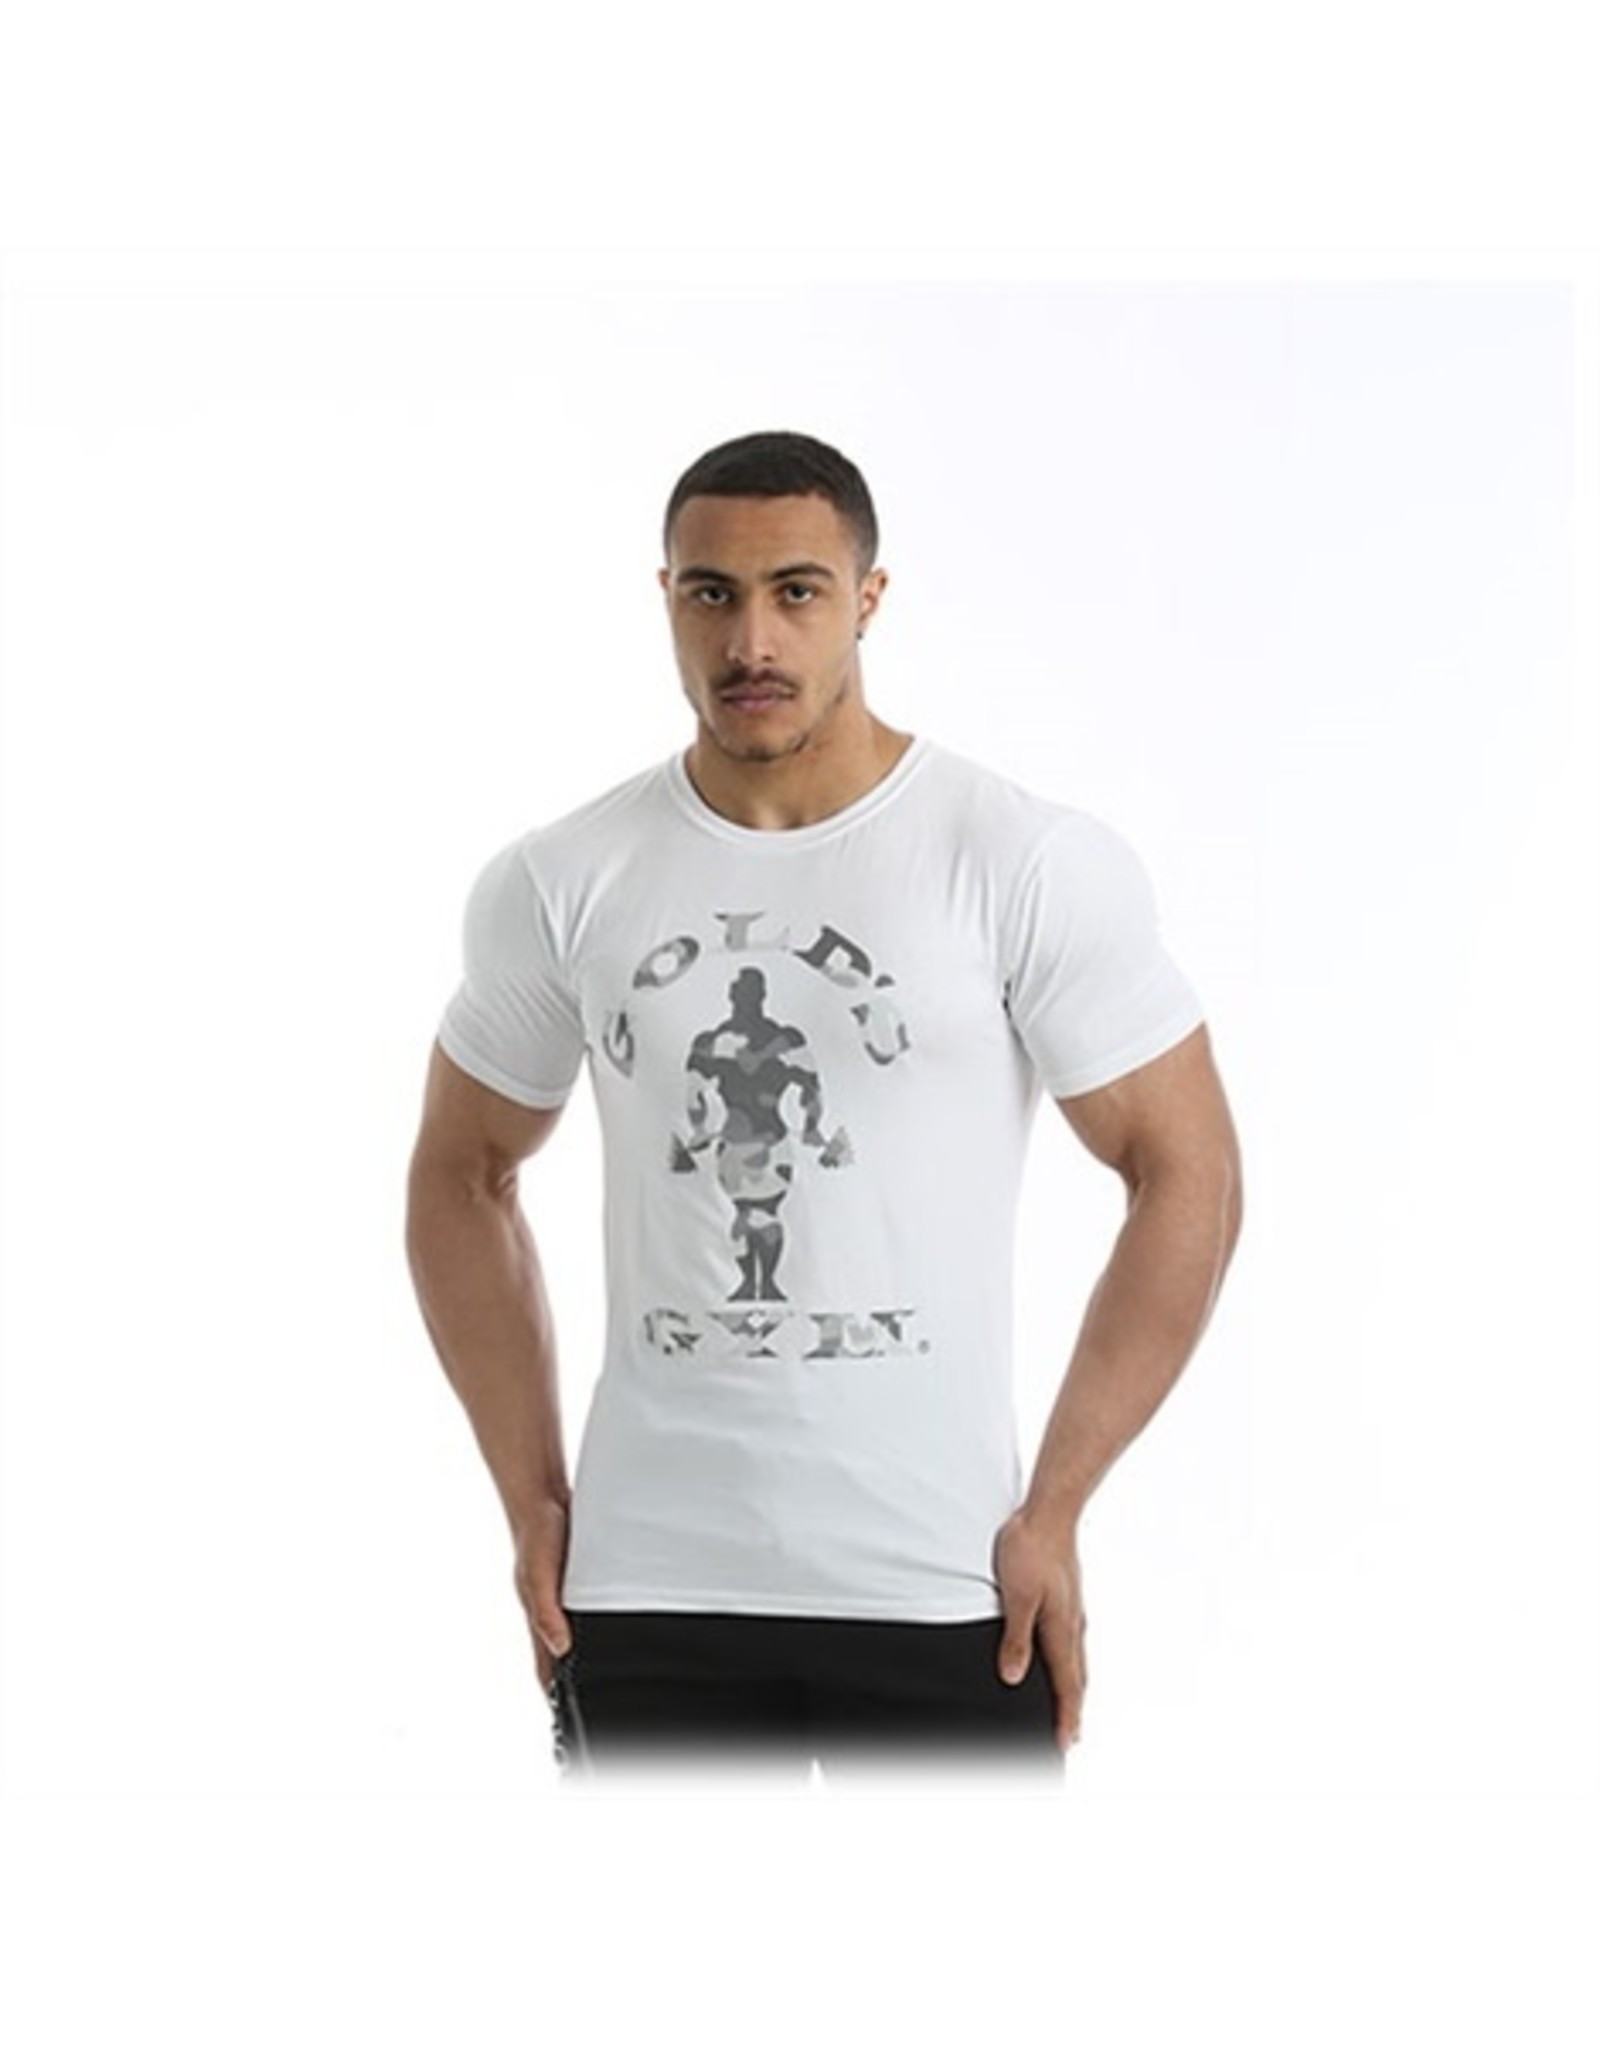 GOLD'S GYM GOLD'S GYM T-SHIRT MUSCLE JOE WHITE